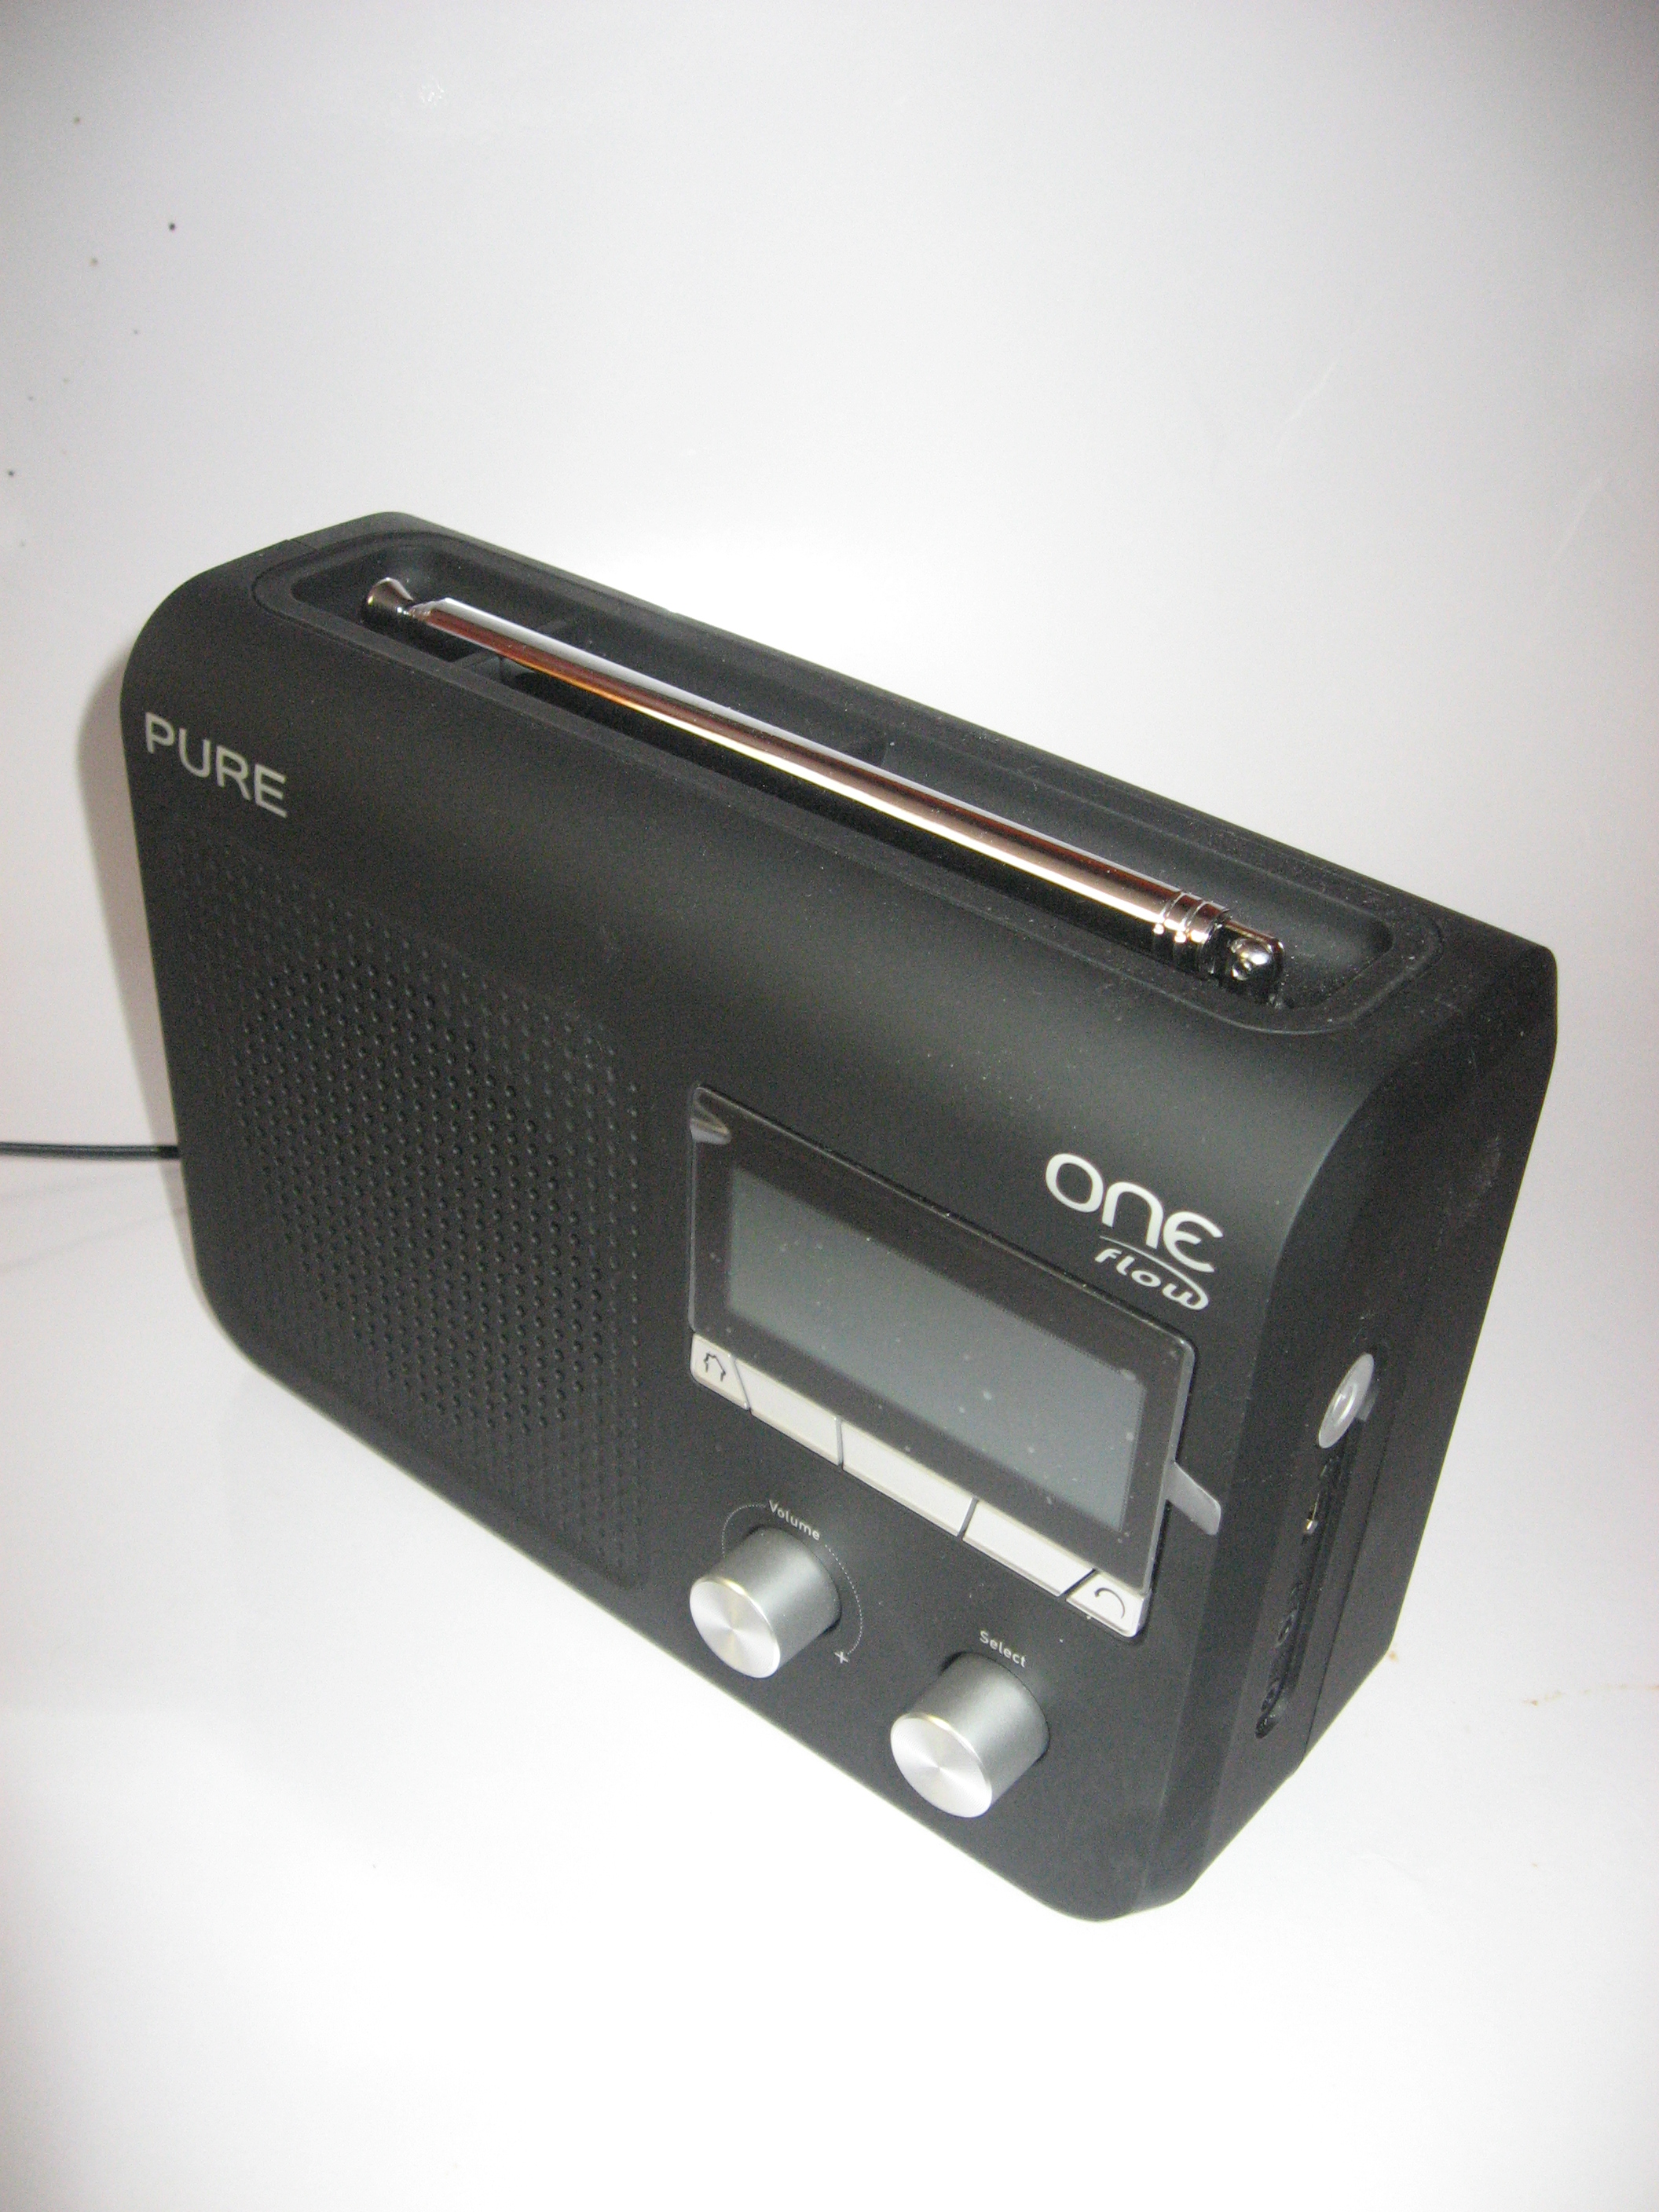 Pure One Flow portable Internet radio - side view